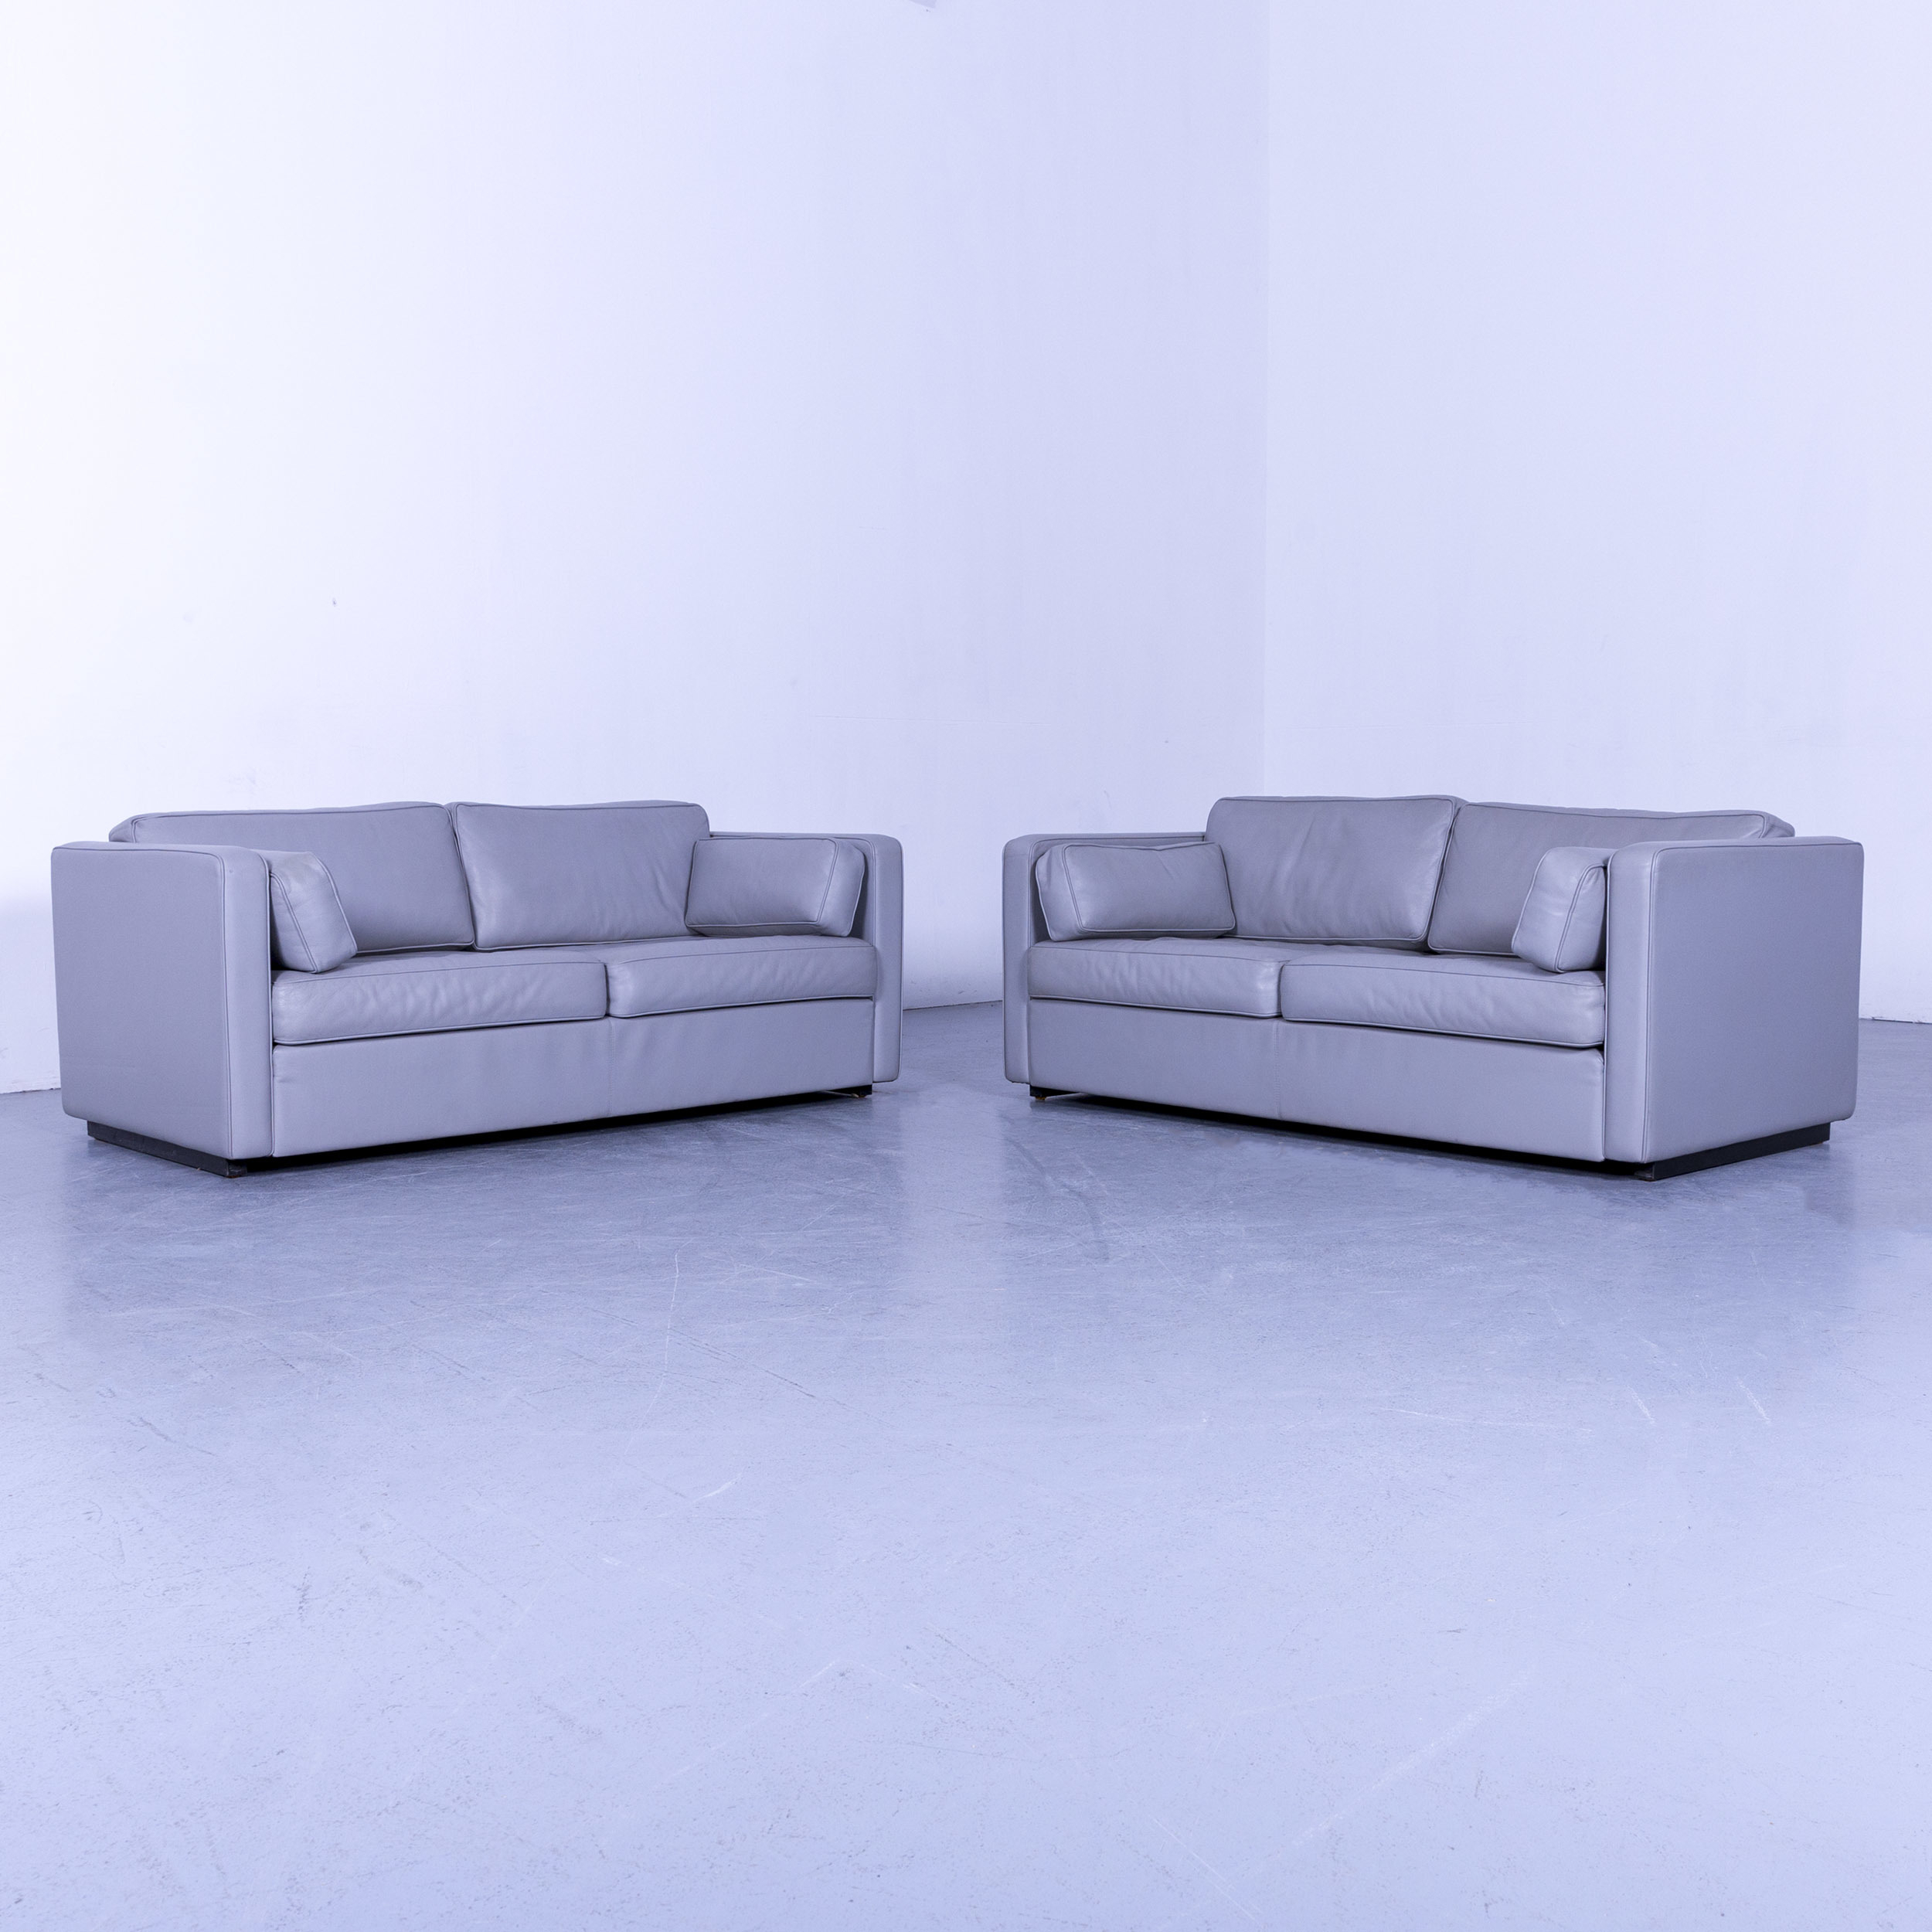 Walter Knoll Designer Leather Sofa Set Gray Two Seater Couch Genuine Regarding Walter Leather Sofa Chairs (Image 15 of 25)